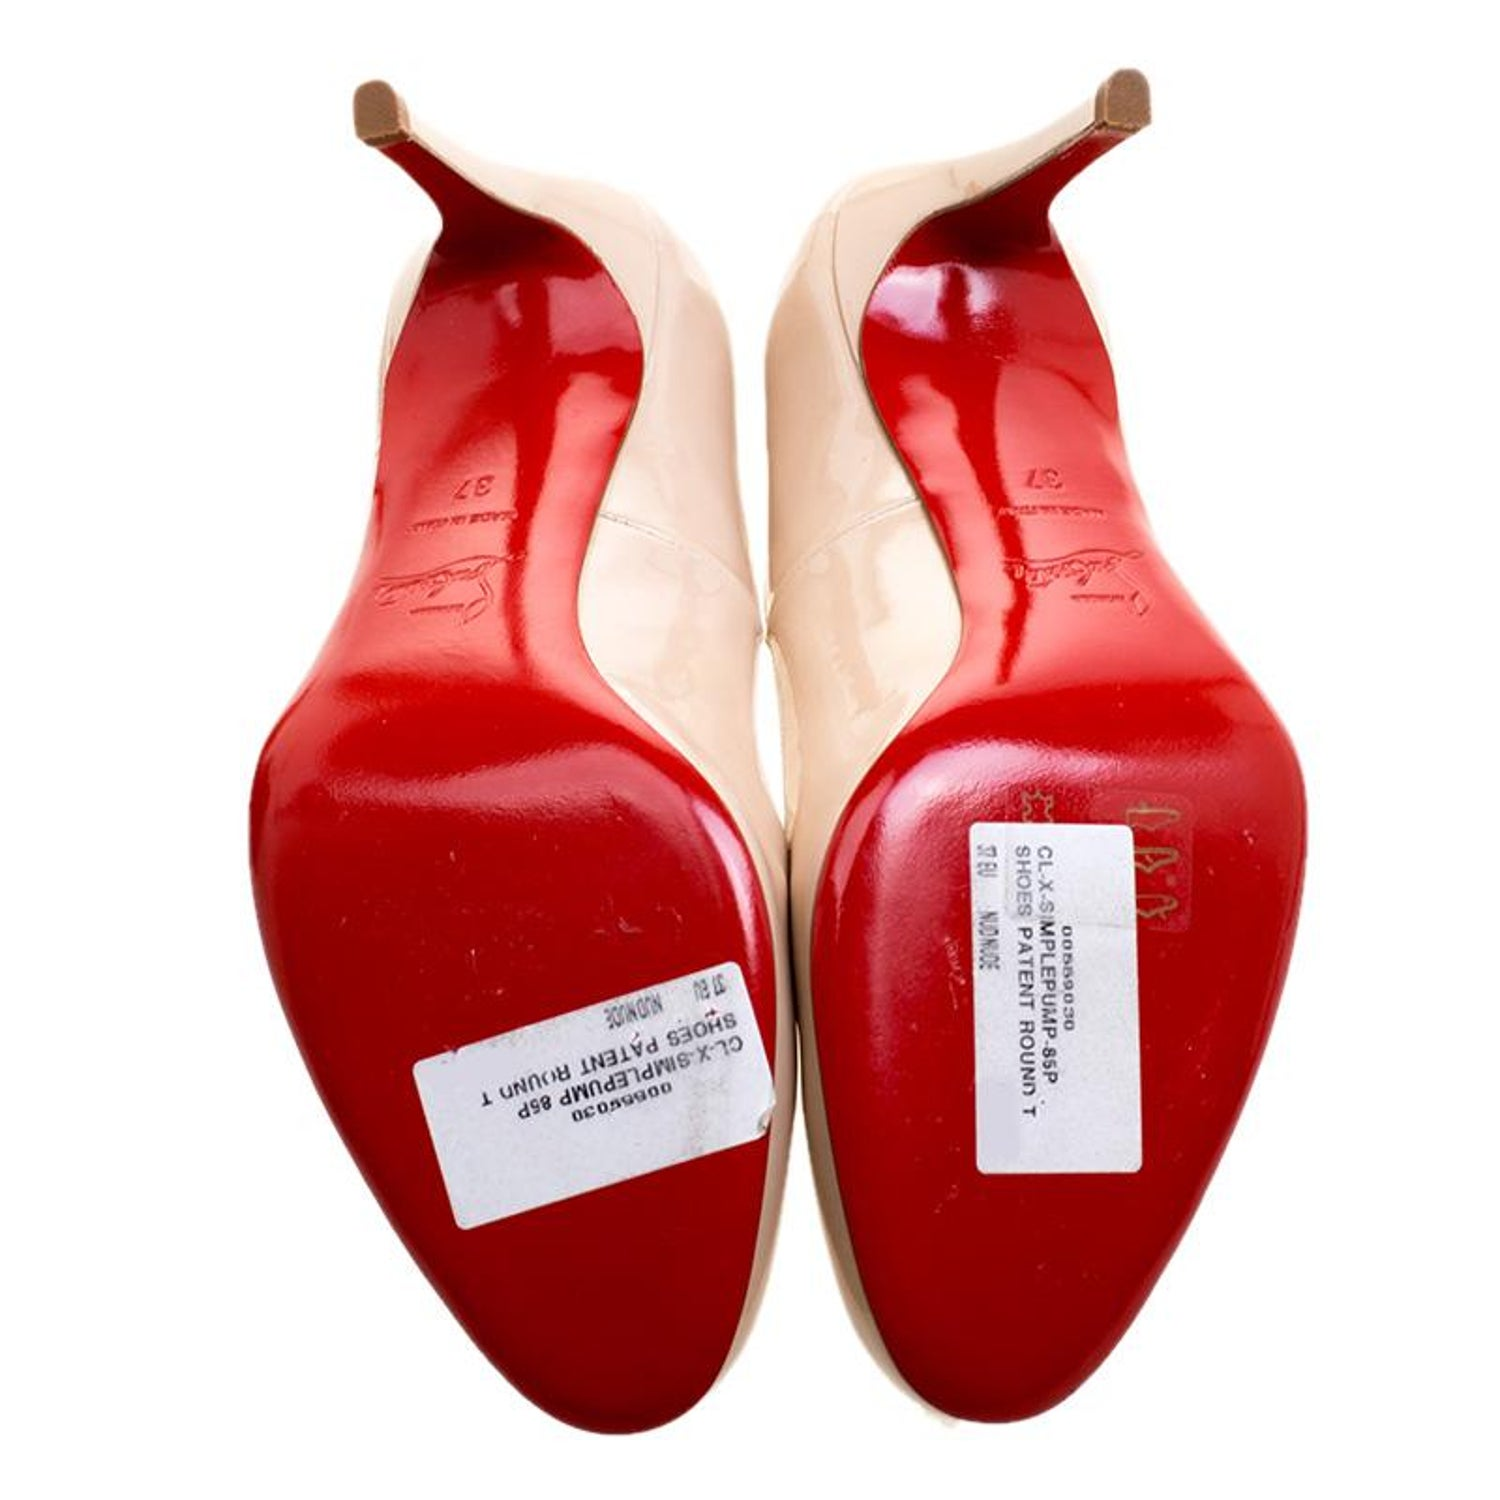 7a0c3a65cea Christian Louboutin Nude Patent Leather Simple Pumps Size 37 For Sale at  1stdibs